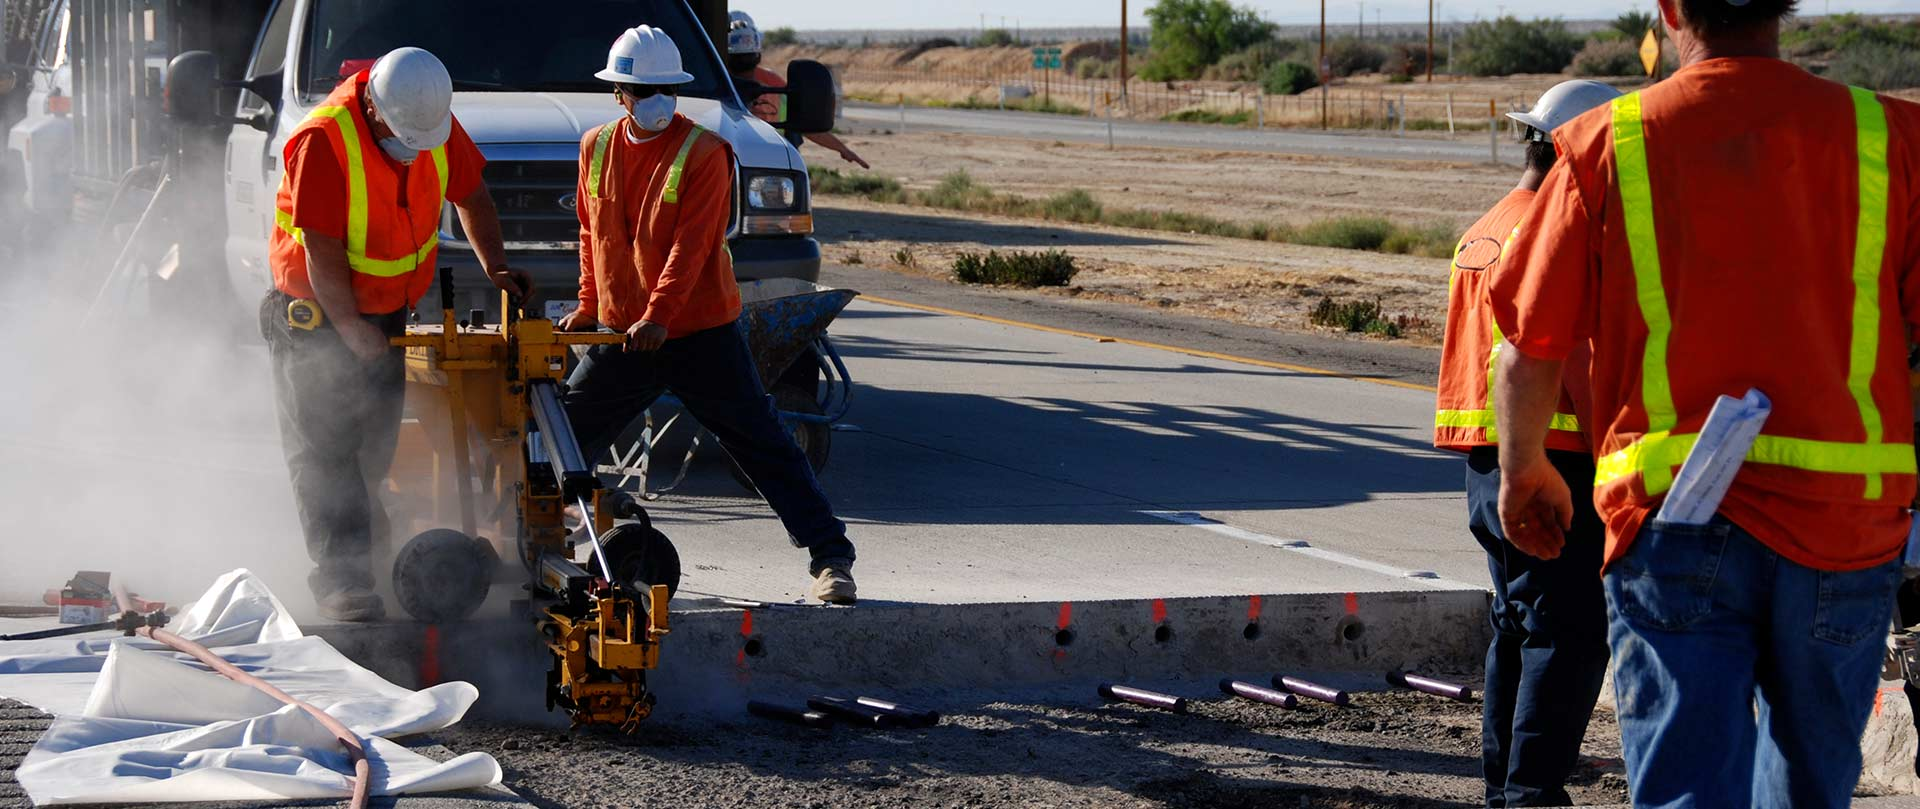 Men practice safety procedures in a road construction zone.